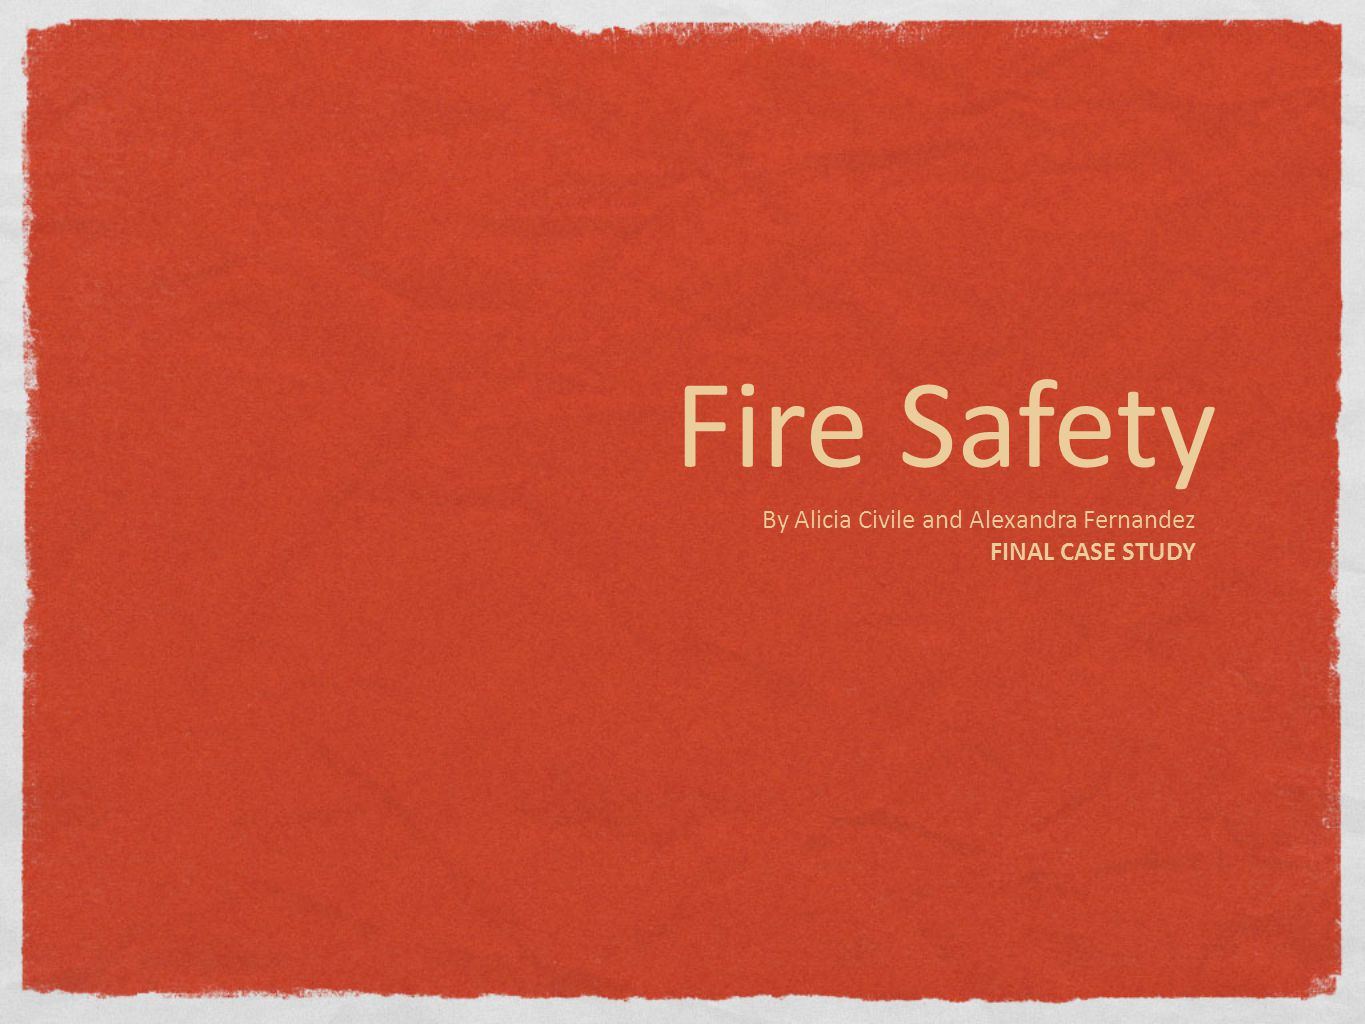 Fire Safety By Alicia Civile and Alexandra Fernandez FINAL CASE STUDY